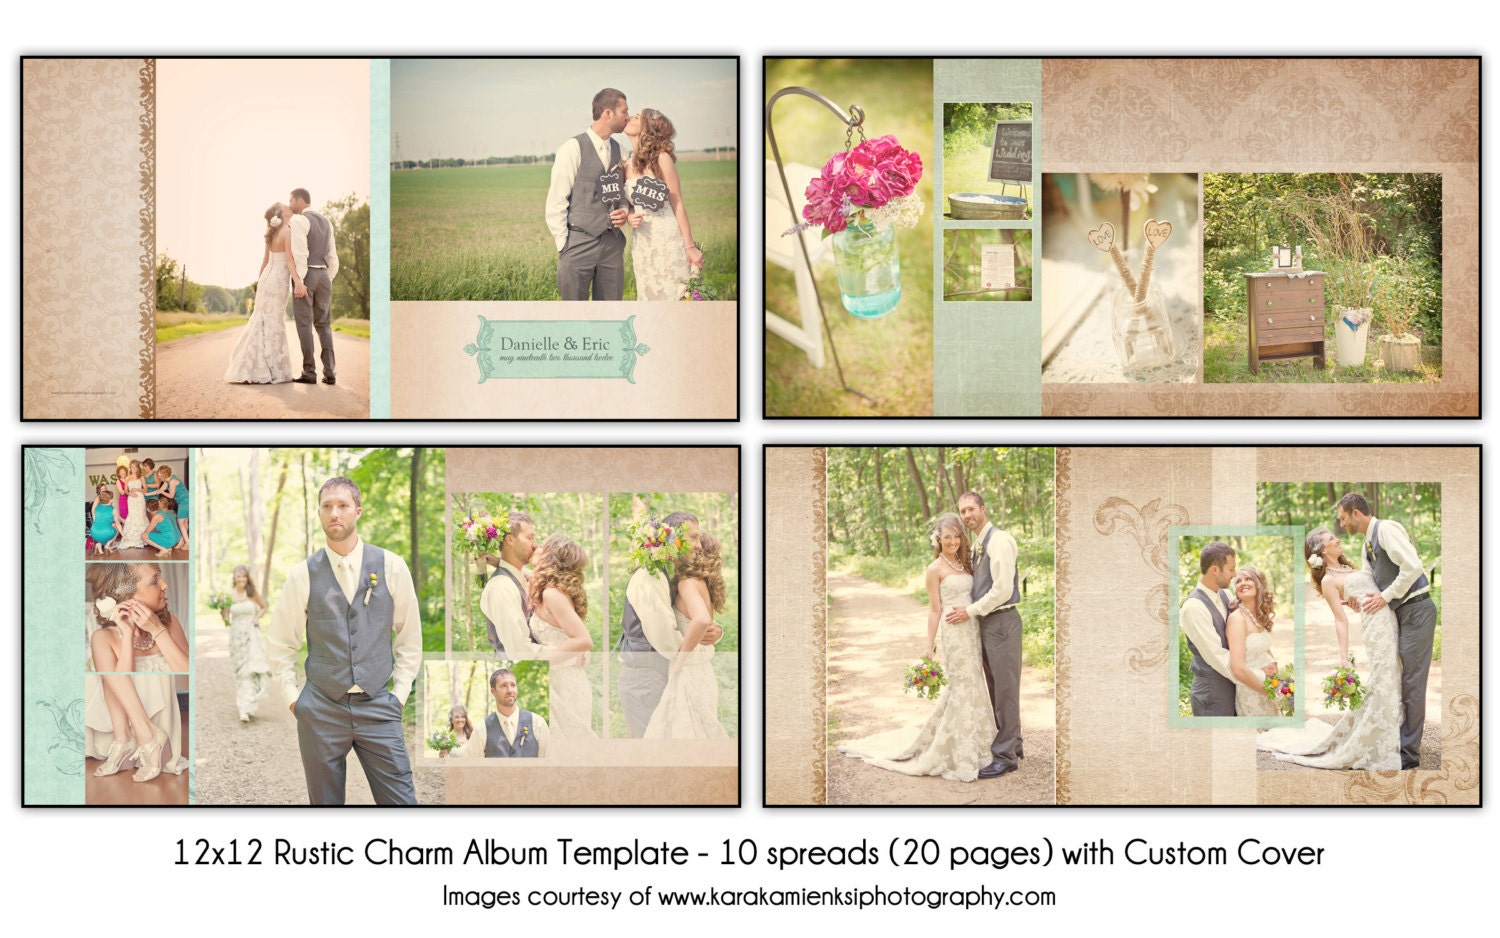 RUSTIC CHARM 12x12 Wedding Album Template 10 spread – Template for Photo Album